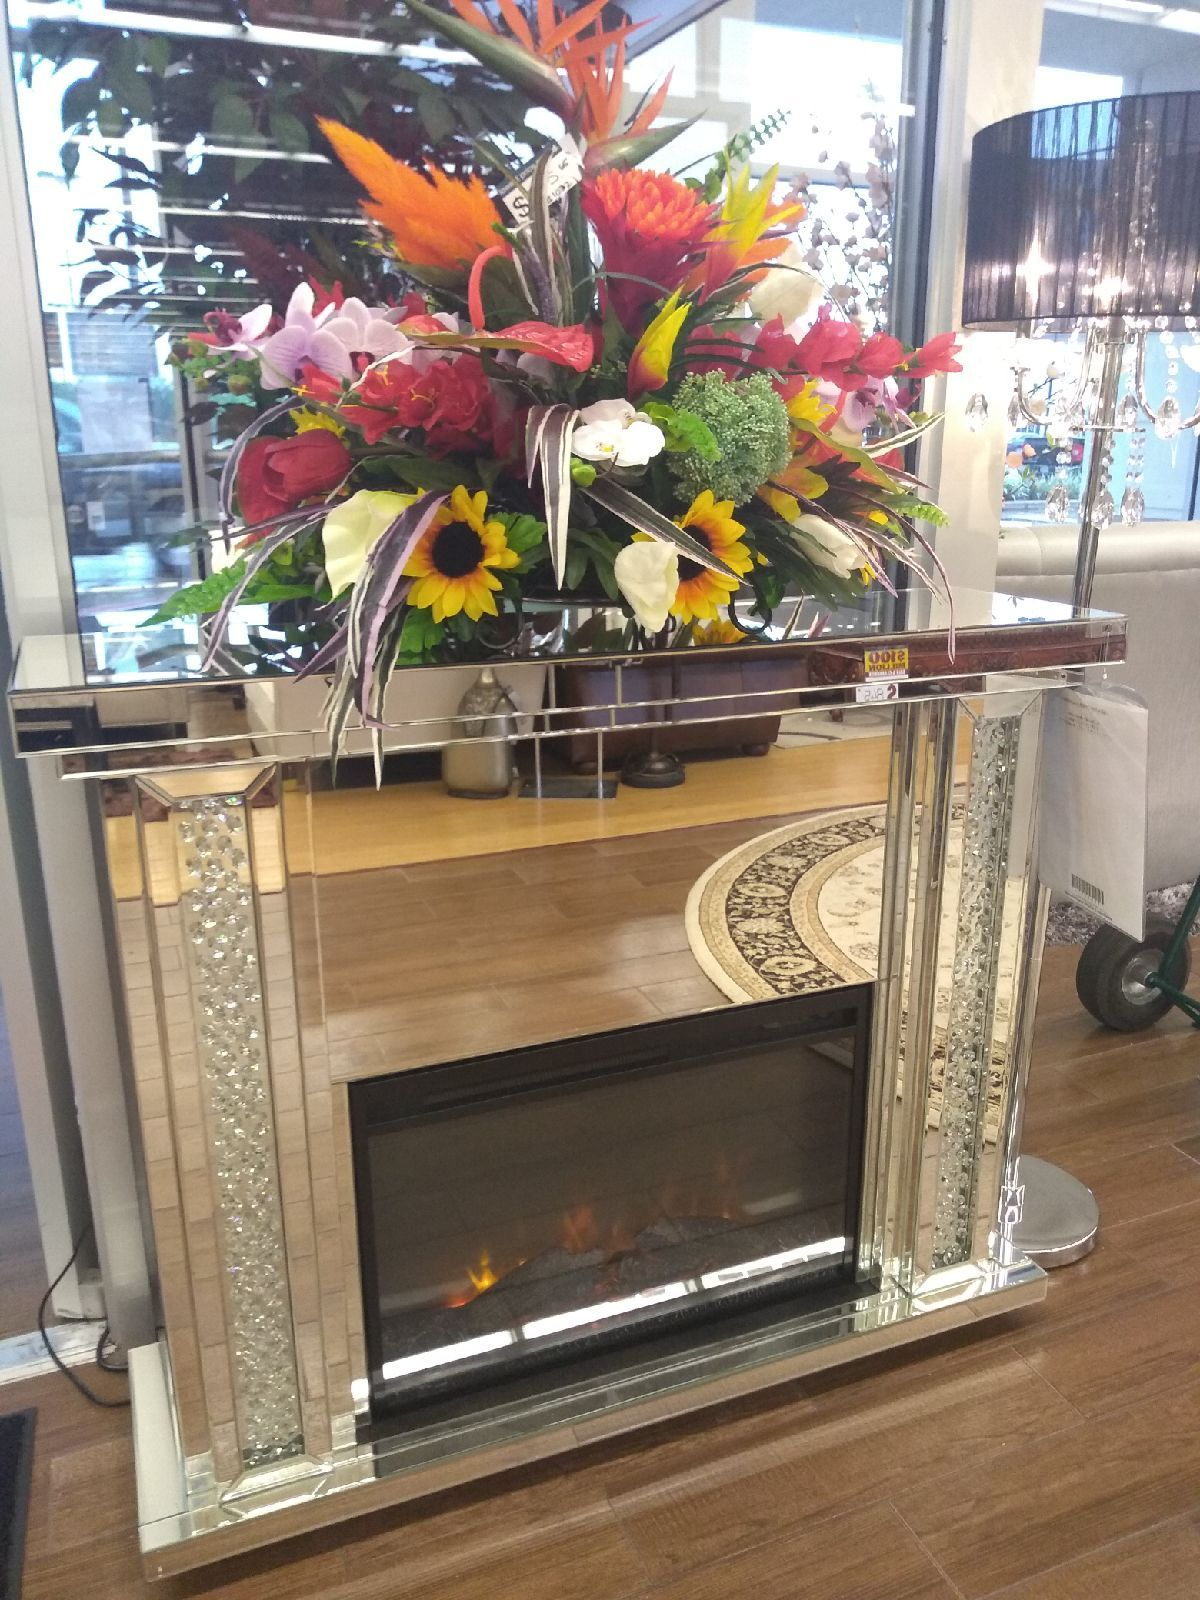 Bel Furniture Willowbrook : furniture, willowbrook, Share:, CRYSTAL, MIRROR, FIREPLACE, Fireplace, Mirror,, Fireplace,, Accessories